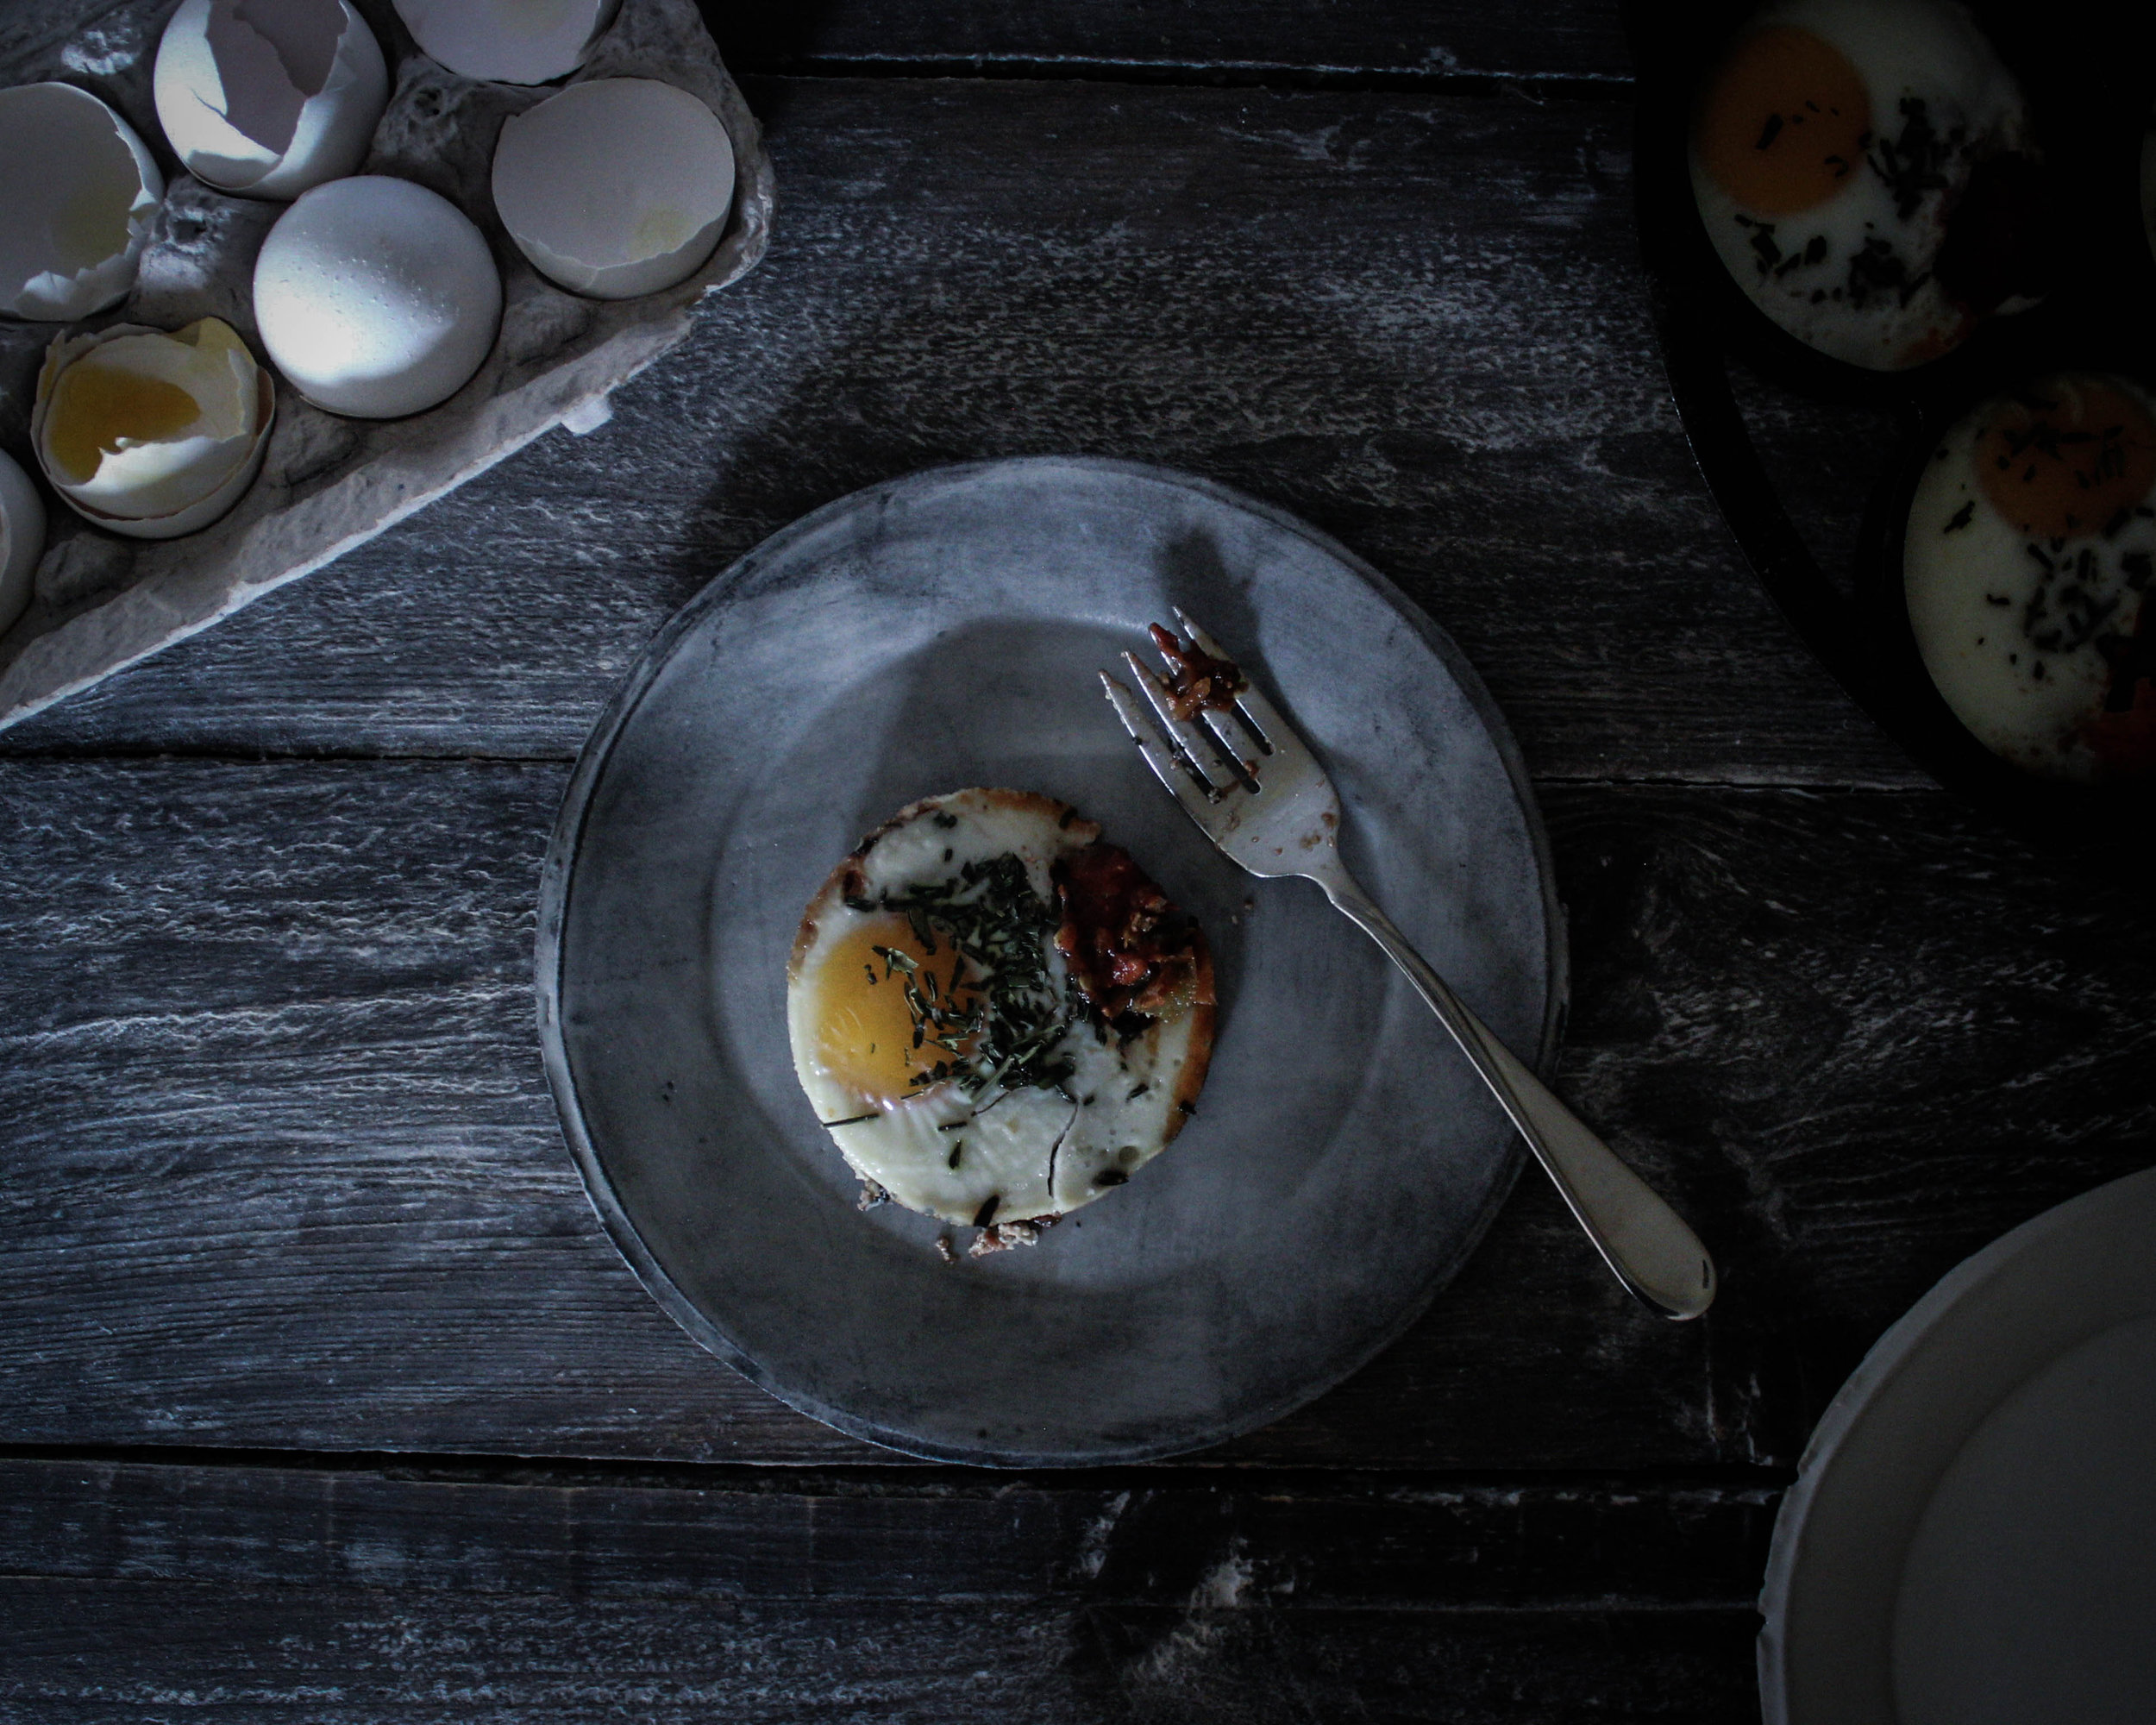 Tarragon Baked Eggs in Lodge Cast Iron